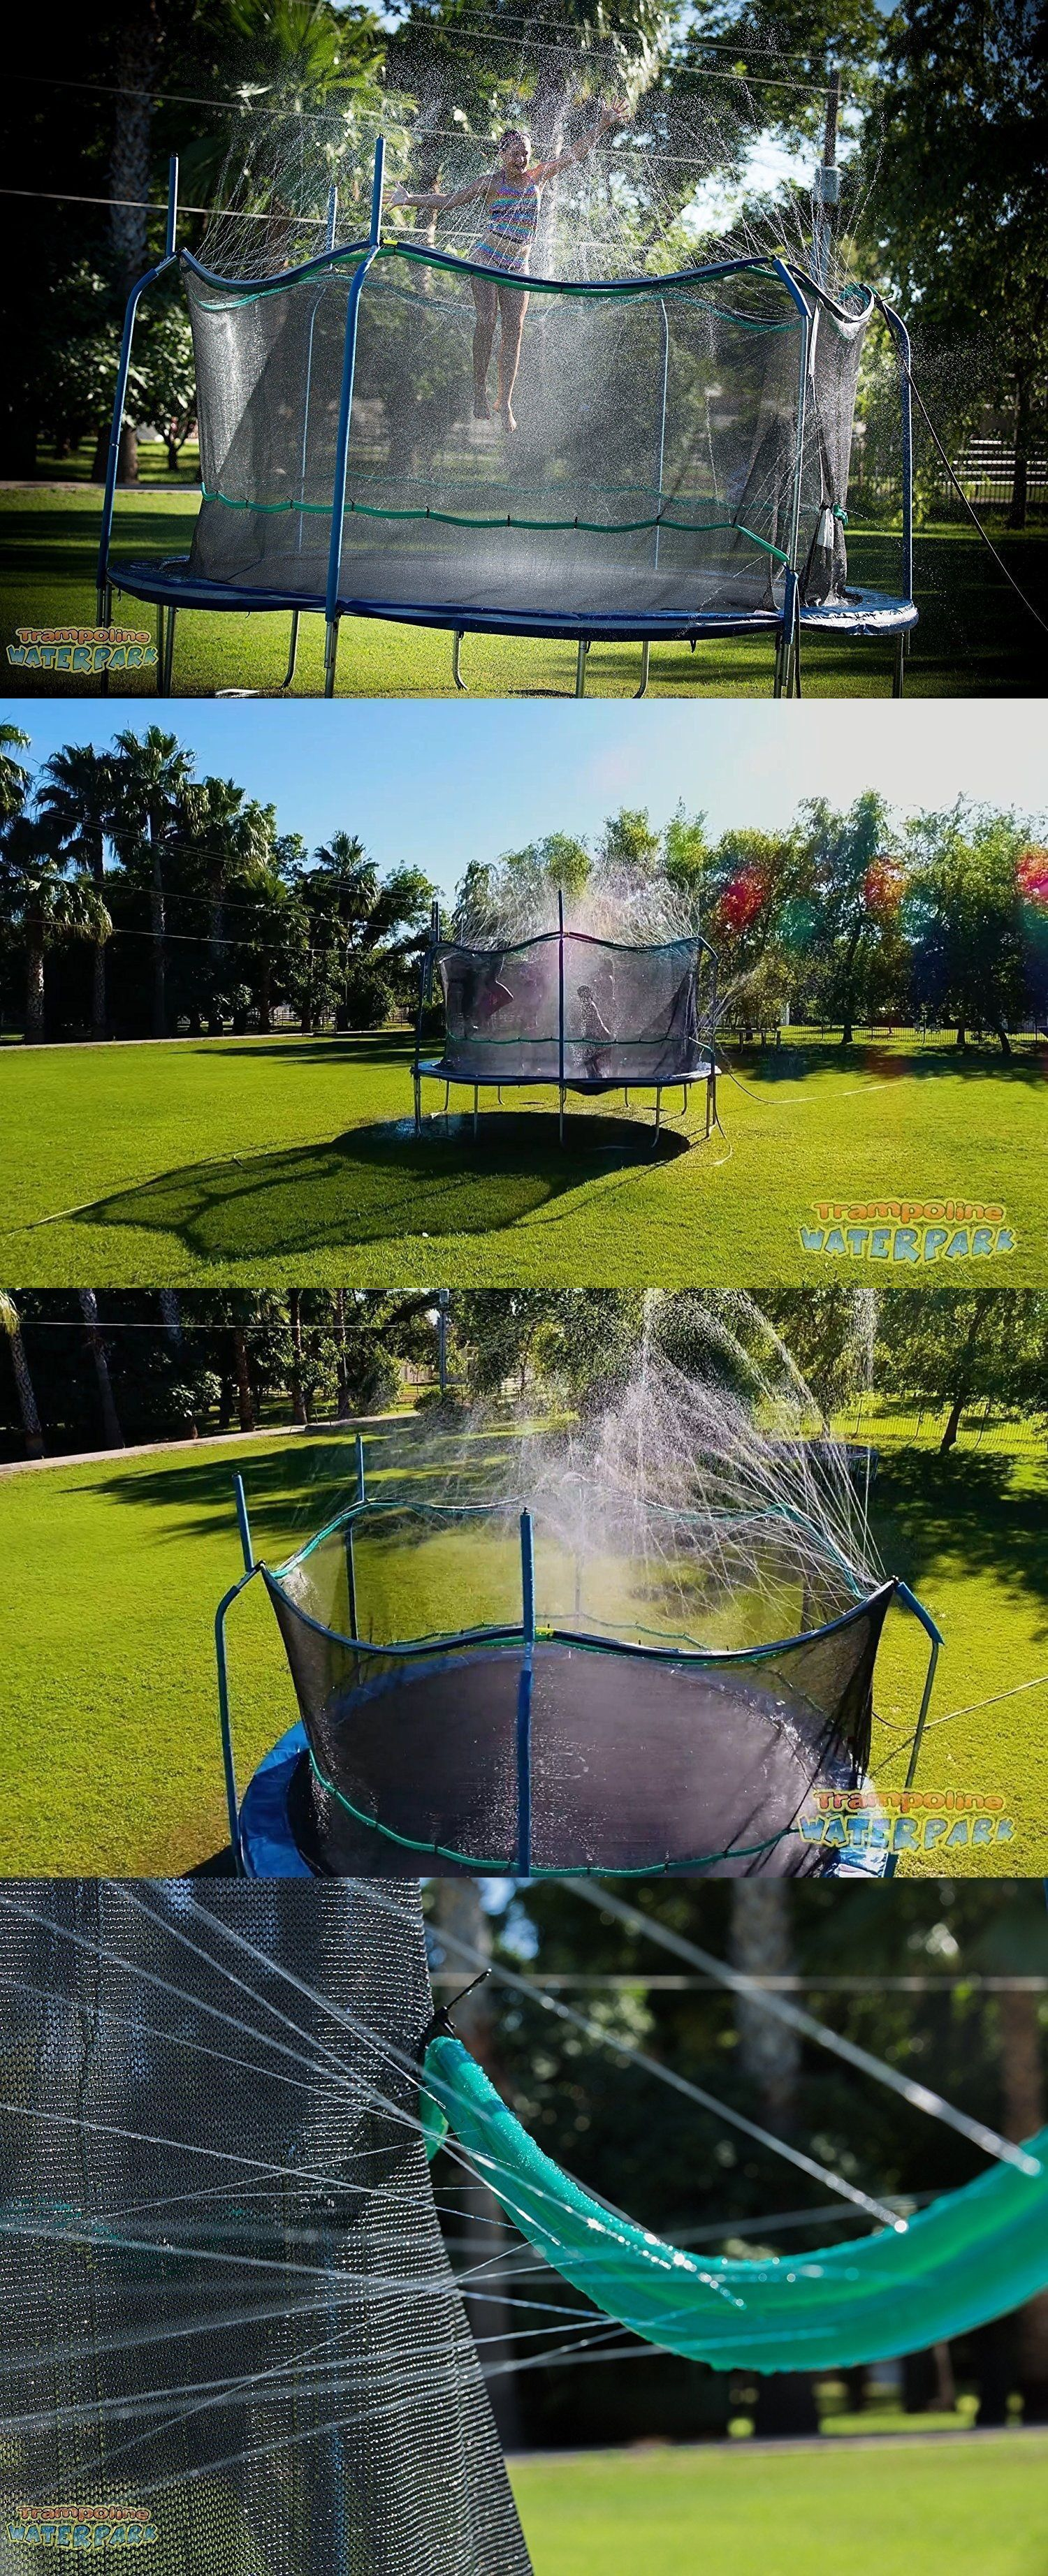 Hose Nozzles And Wands 181015 Water Play Sprinkler Summer Fun